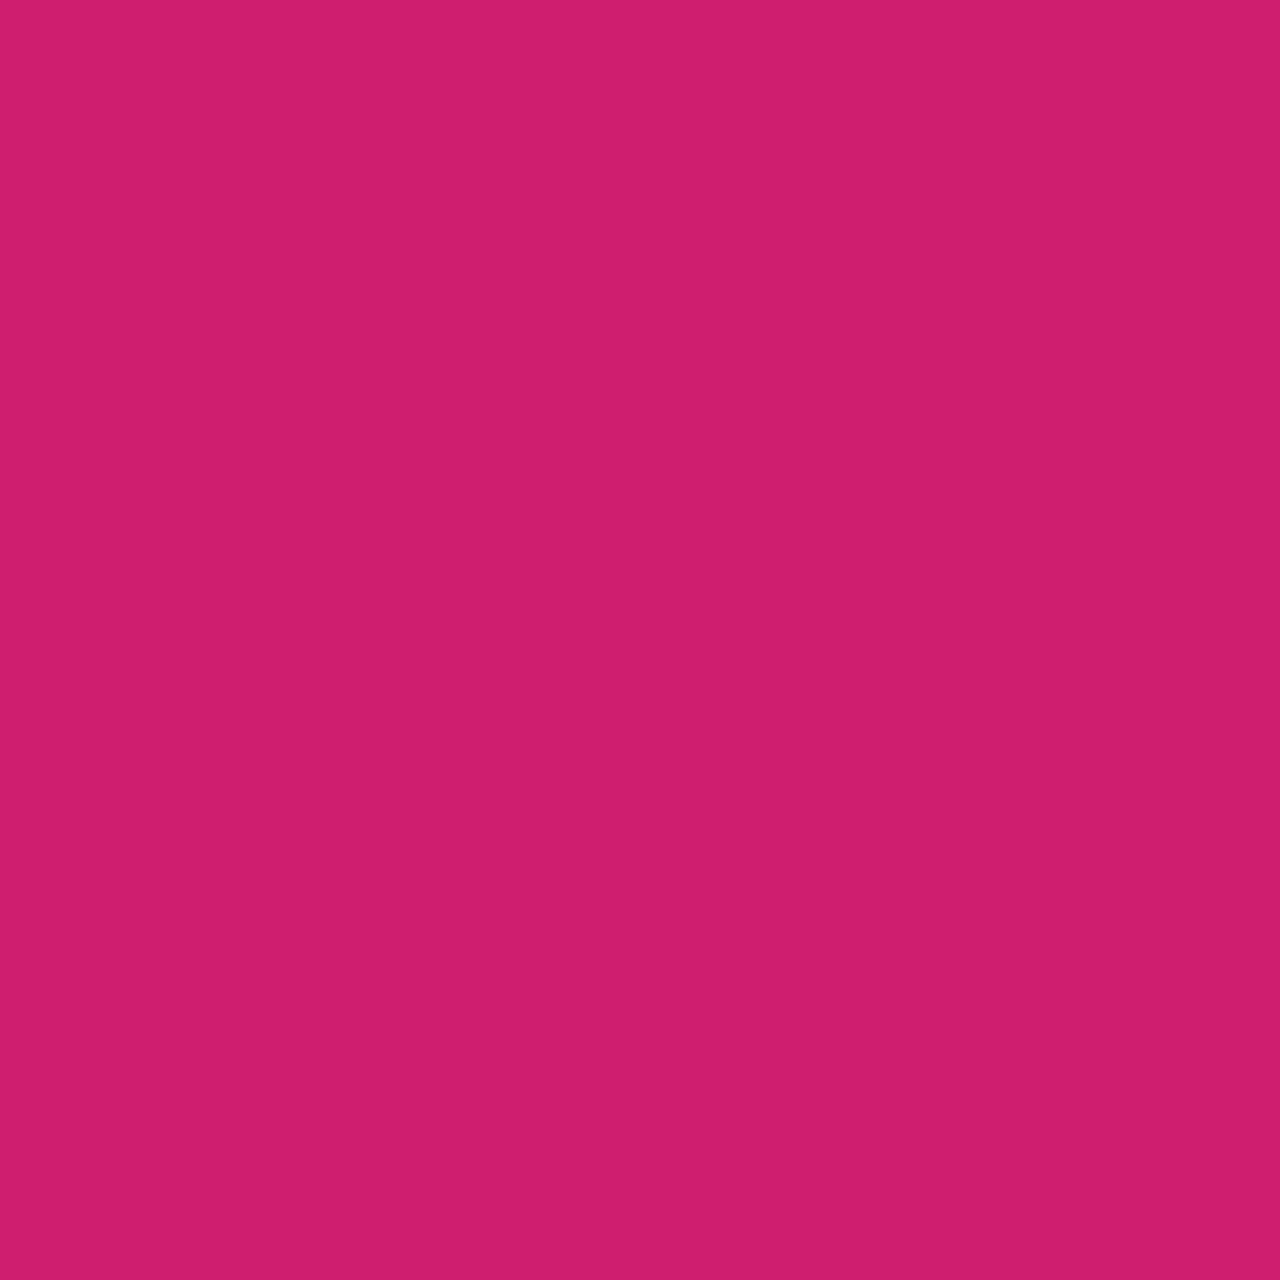 #0332 Rosco Gels Roscolux Cherry Rose, 20x24""